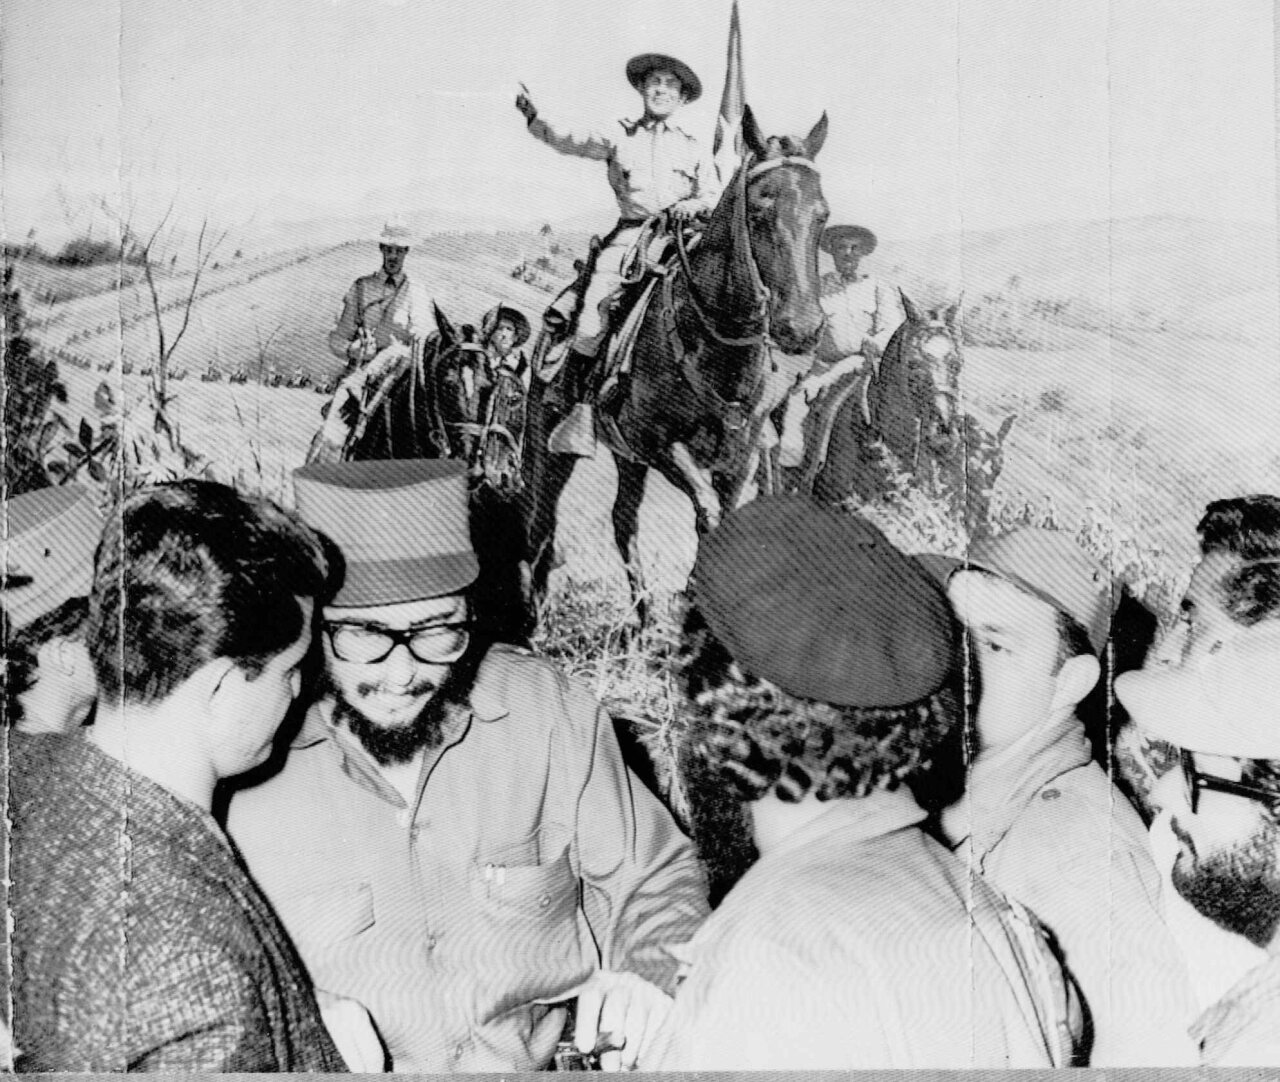 Fidel Castro is shown with a group of his soldiers in front of a mural showing ex-dictator Fulgencio Batista as an army Colonel leading troops through mountains of eastern Cuba. Castro viewed the mural at Batista's farm 15 miles southwest of Havana. This is a 1959 photo. (AP PHOTO)